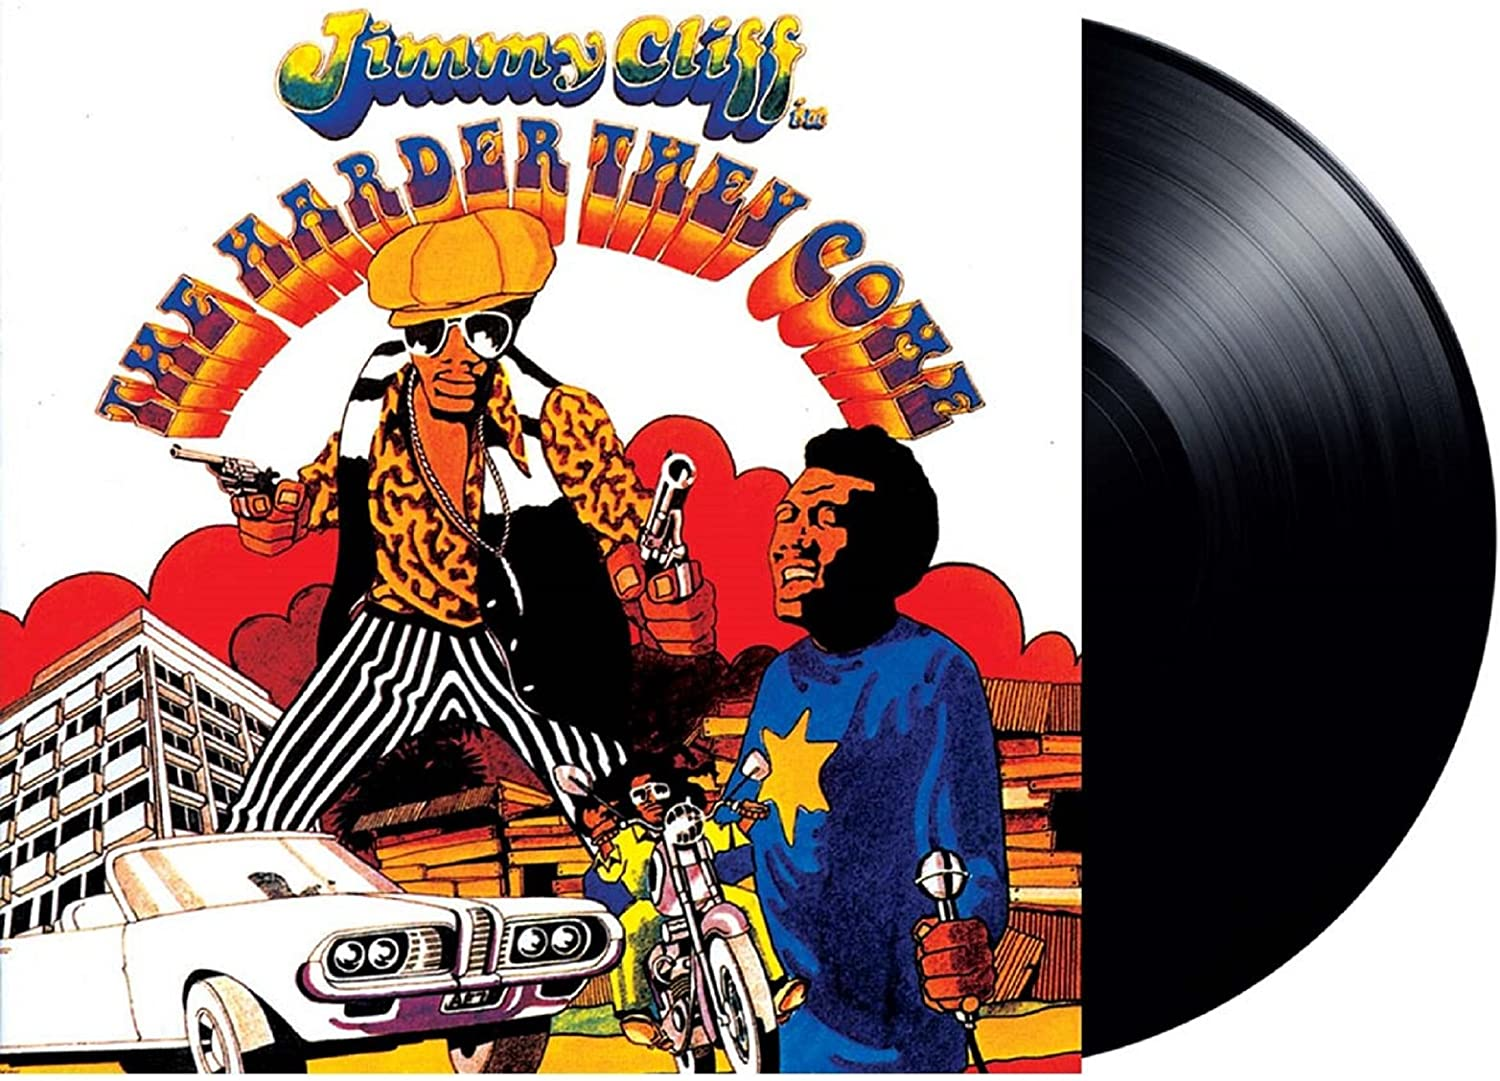 Soundtrack/The Harder They Come (Jimmy Cliff) [LP]